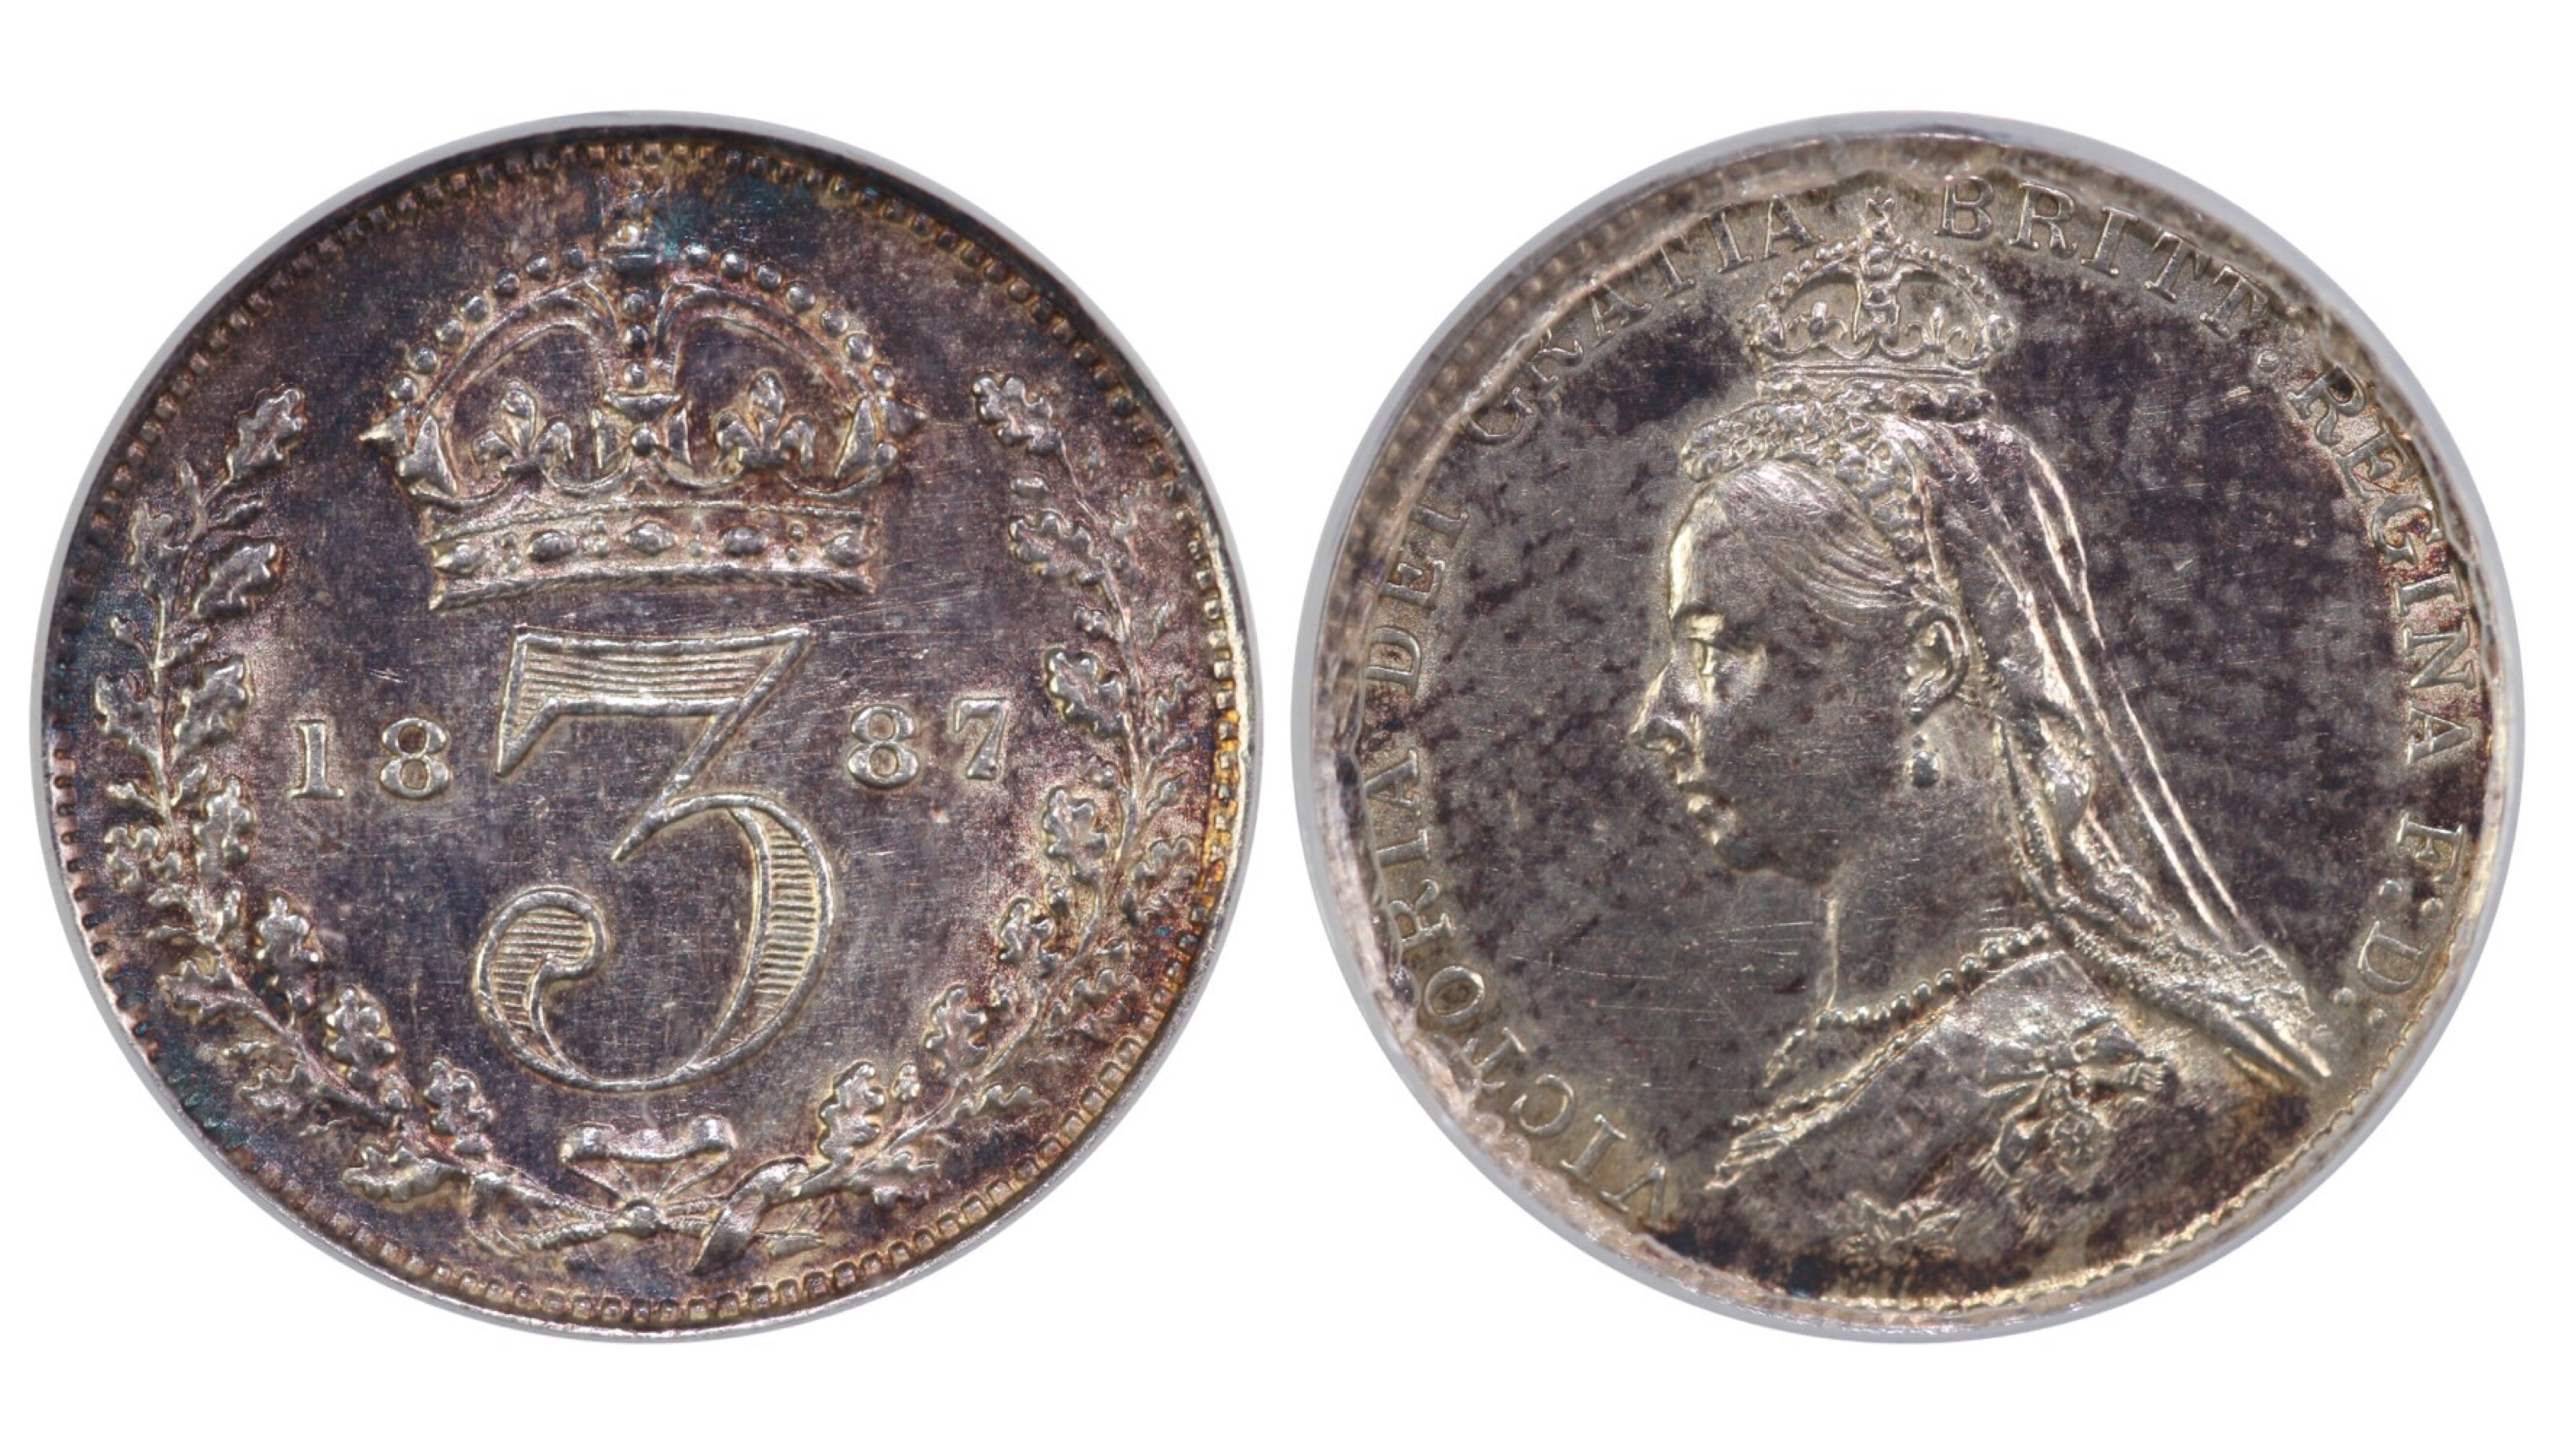 1887 Threepence, CGS 60, Victoria, Dies 2A, Davies 1331, UIN 22245, Sold at FB auction